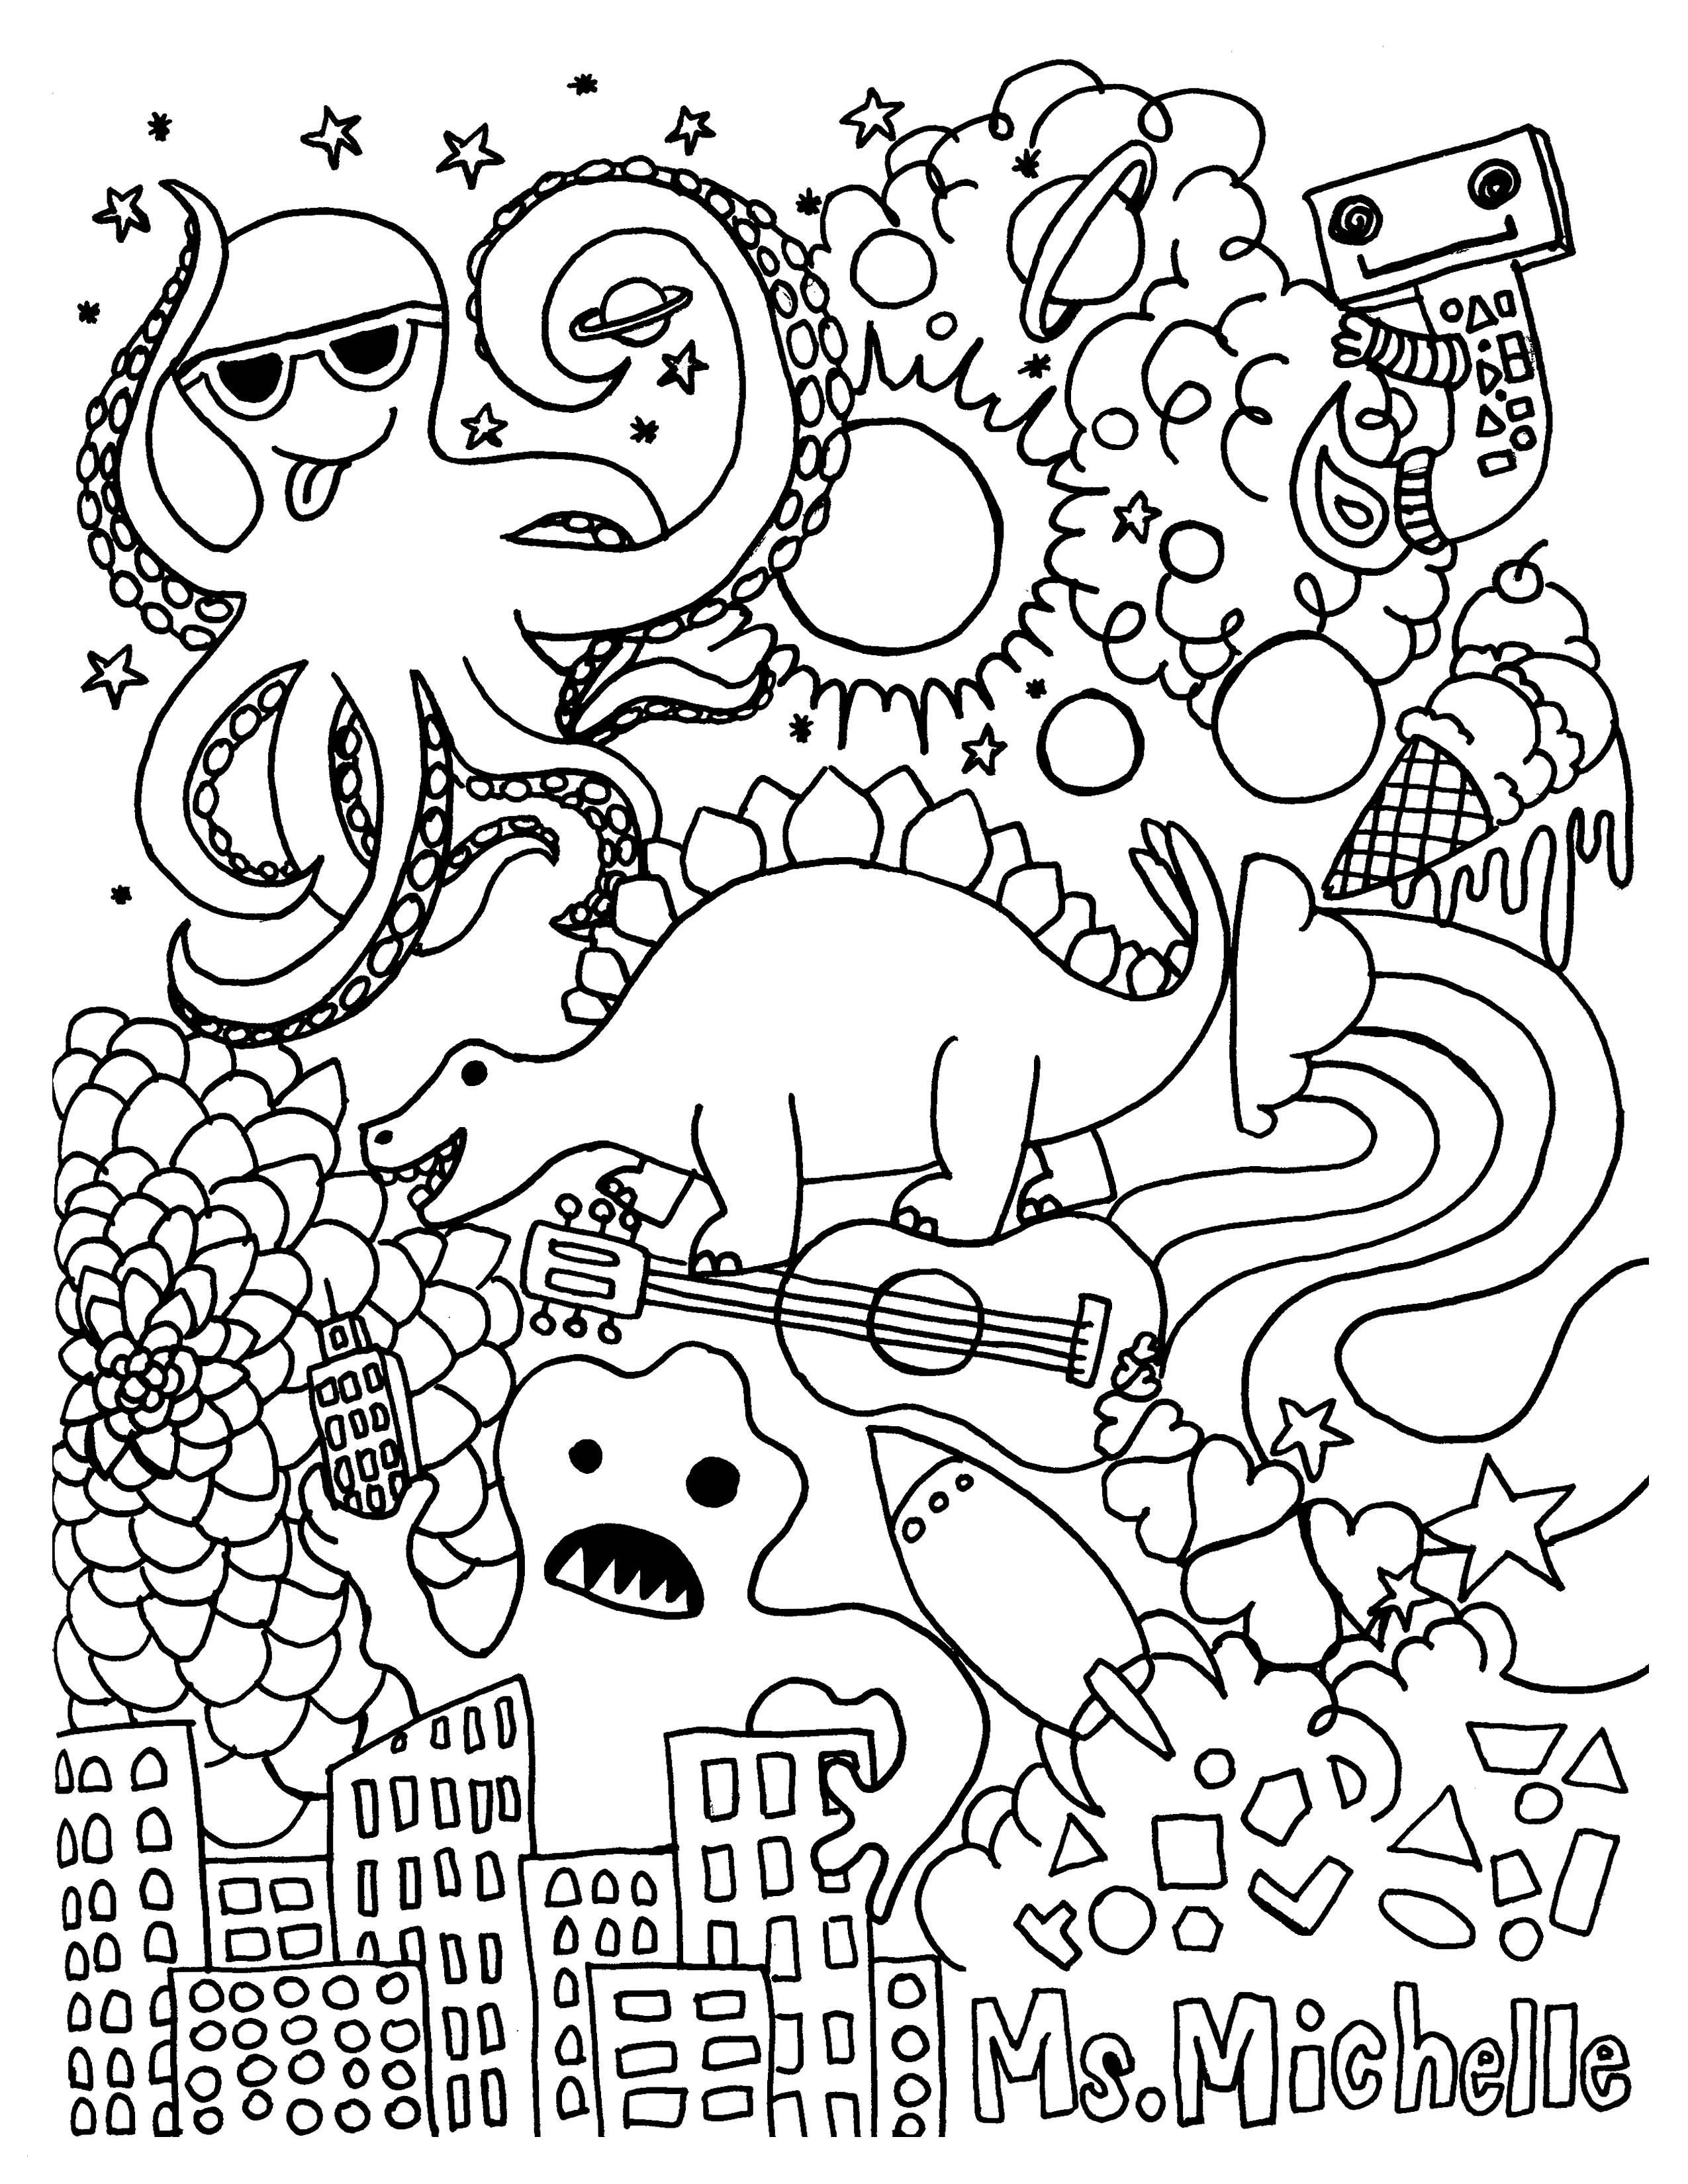 coloring pages of jesus Collection-Easy to Draw Jesus Coloring Jesus Lovable Coloring Pages About Jesus Easy to 2-k